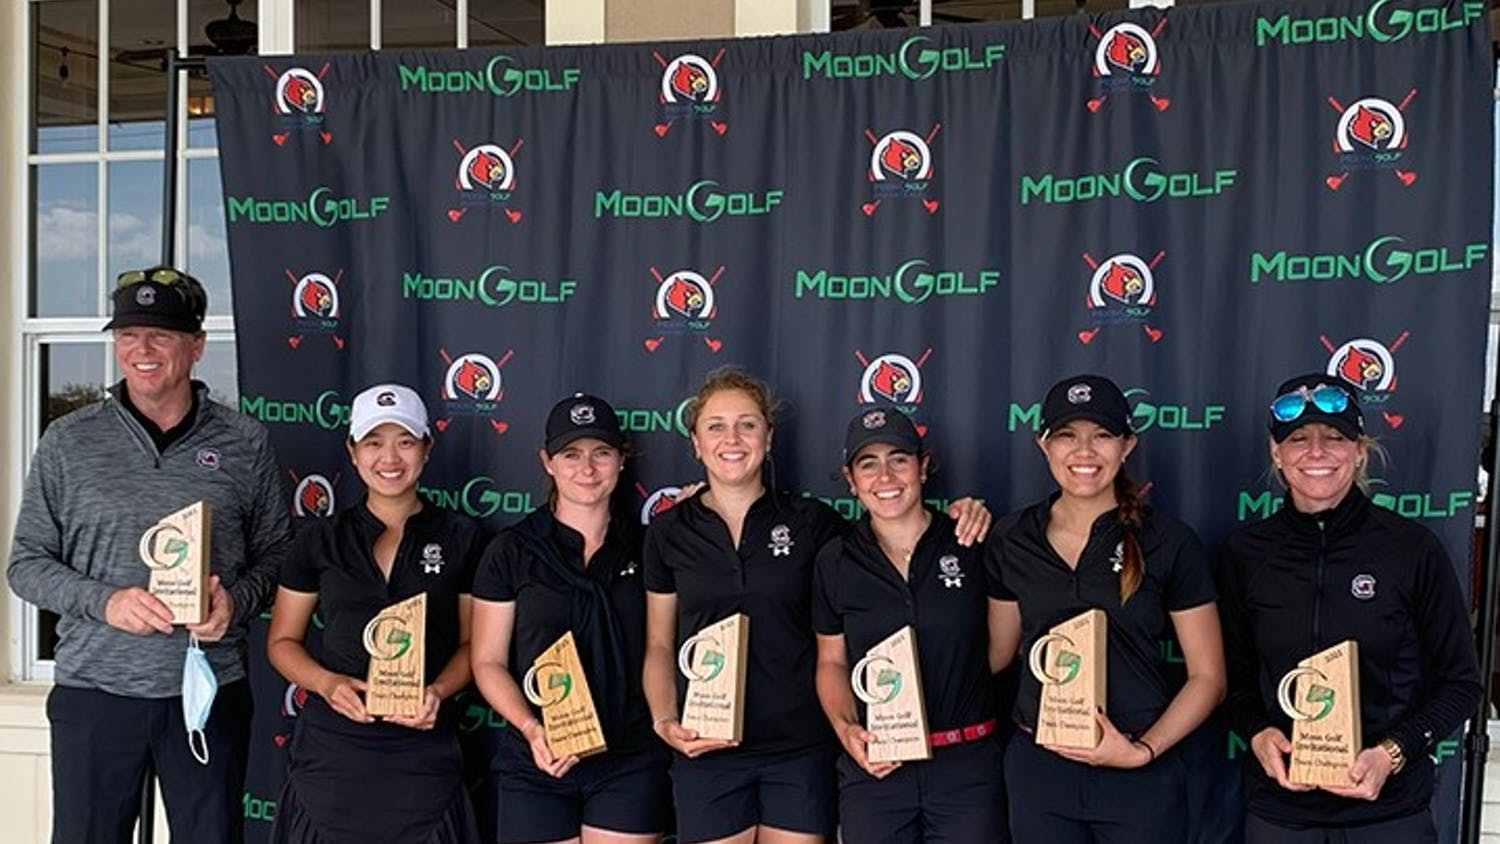 The women's golf team poses for a photo at the Moon Golf Invitational in Melbourne, Florida. The tournament win was the first of the spring season for the No. 2 Gamecocks.